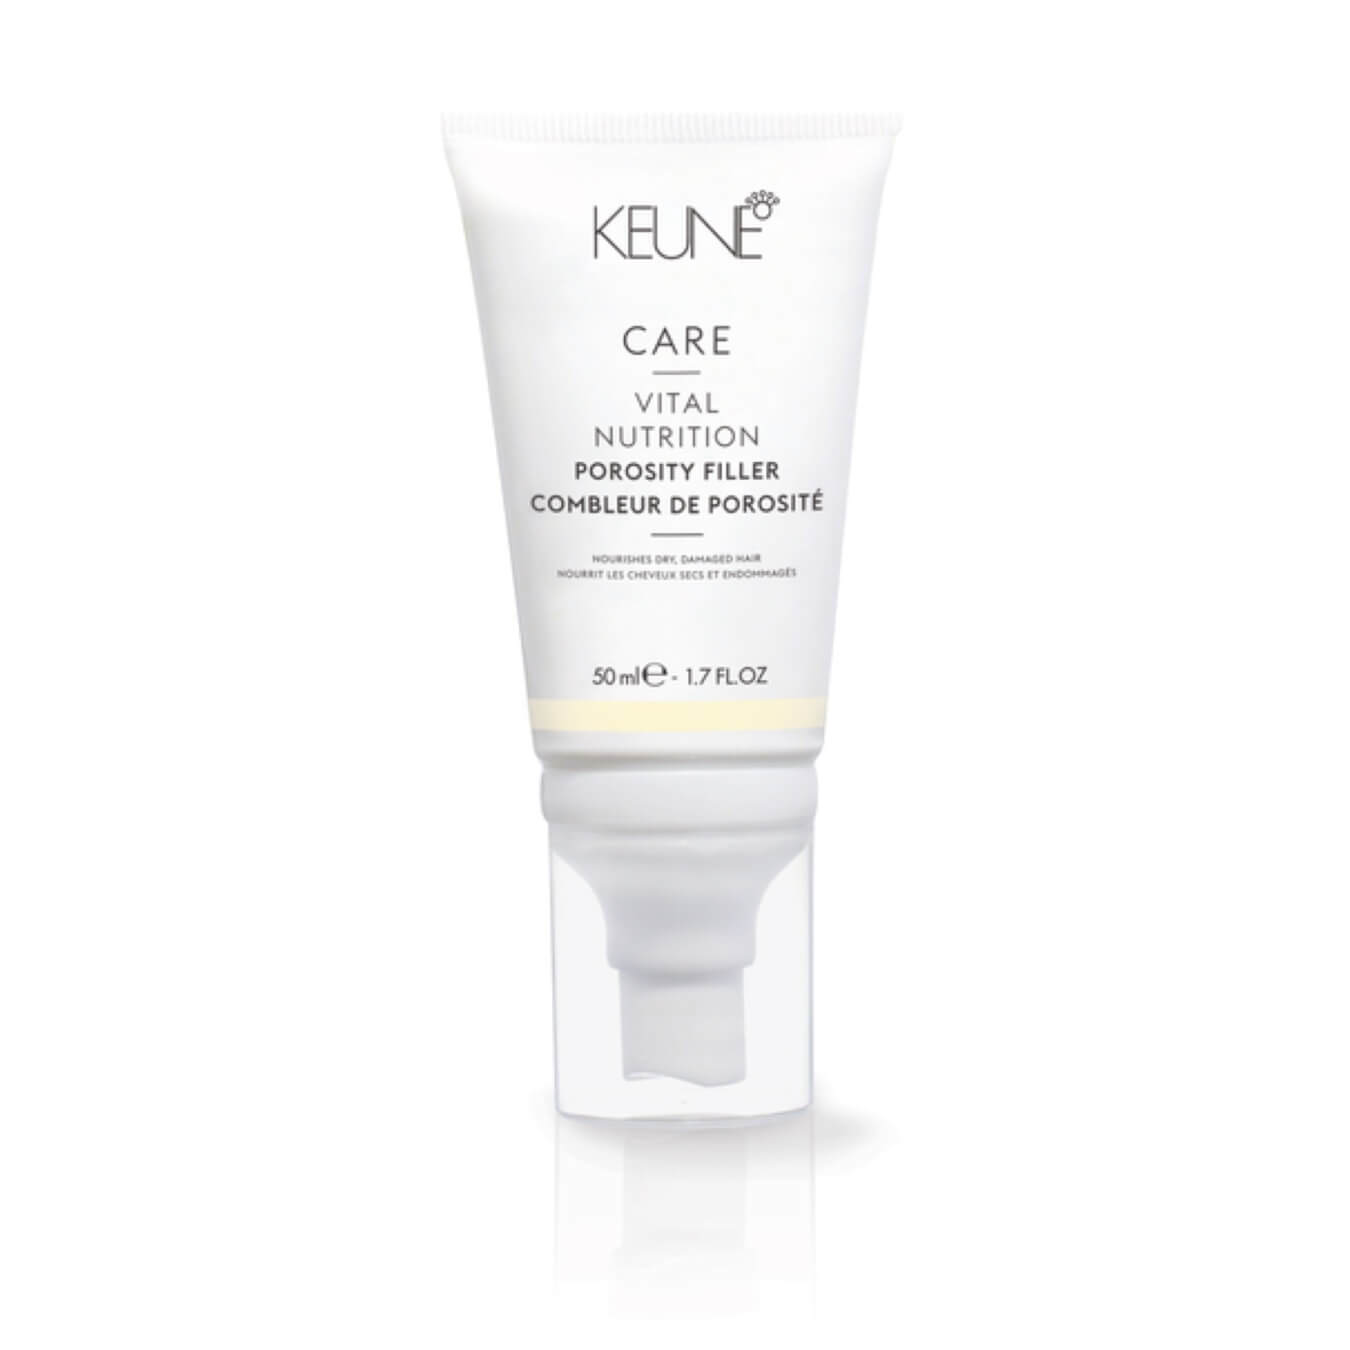 Koop Keune Care Vital Nutrition Porosity Filler 50ml